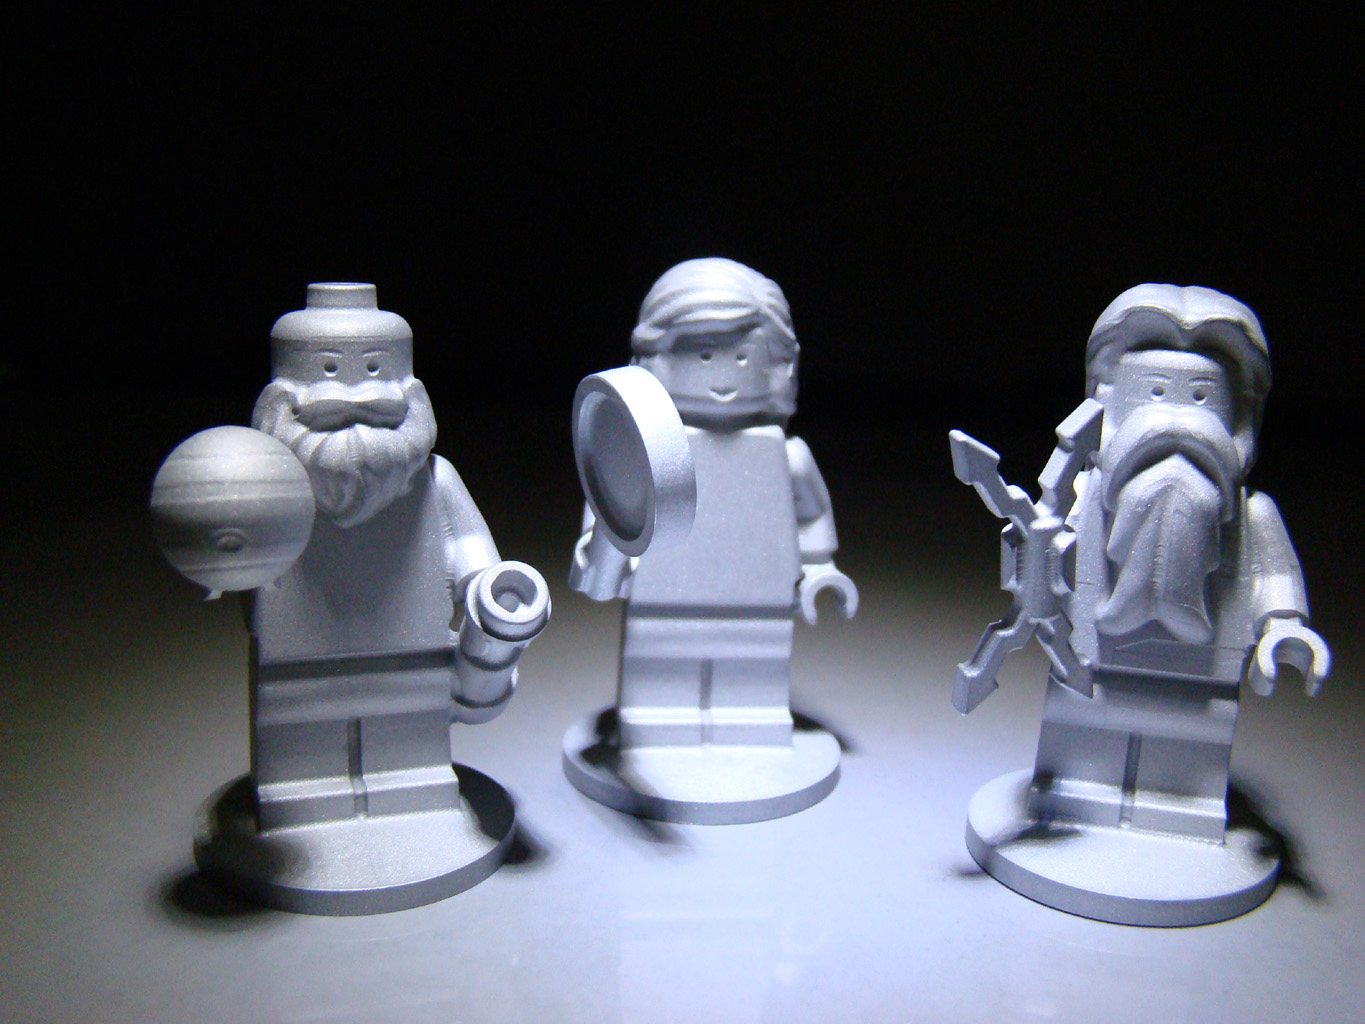 The three LEGO figurines flying aboard the Juno spacecraft are the Roman god Jupiter, his wife Juno and Galileo Galilei.